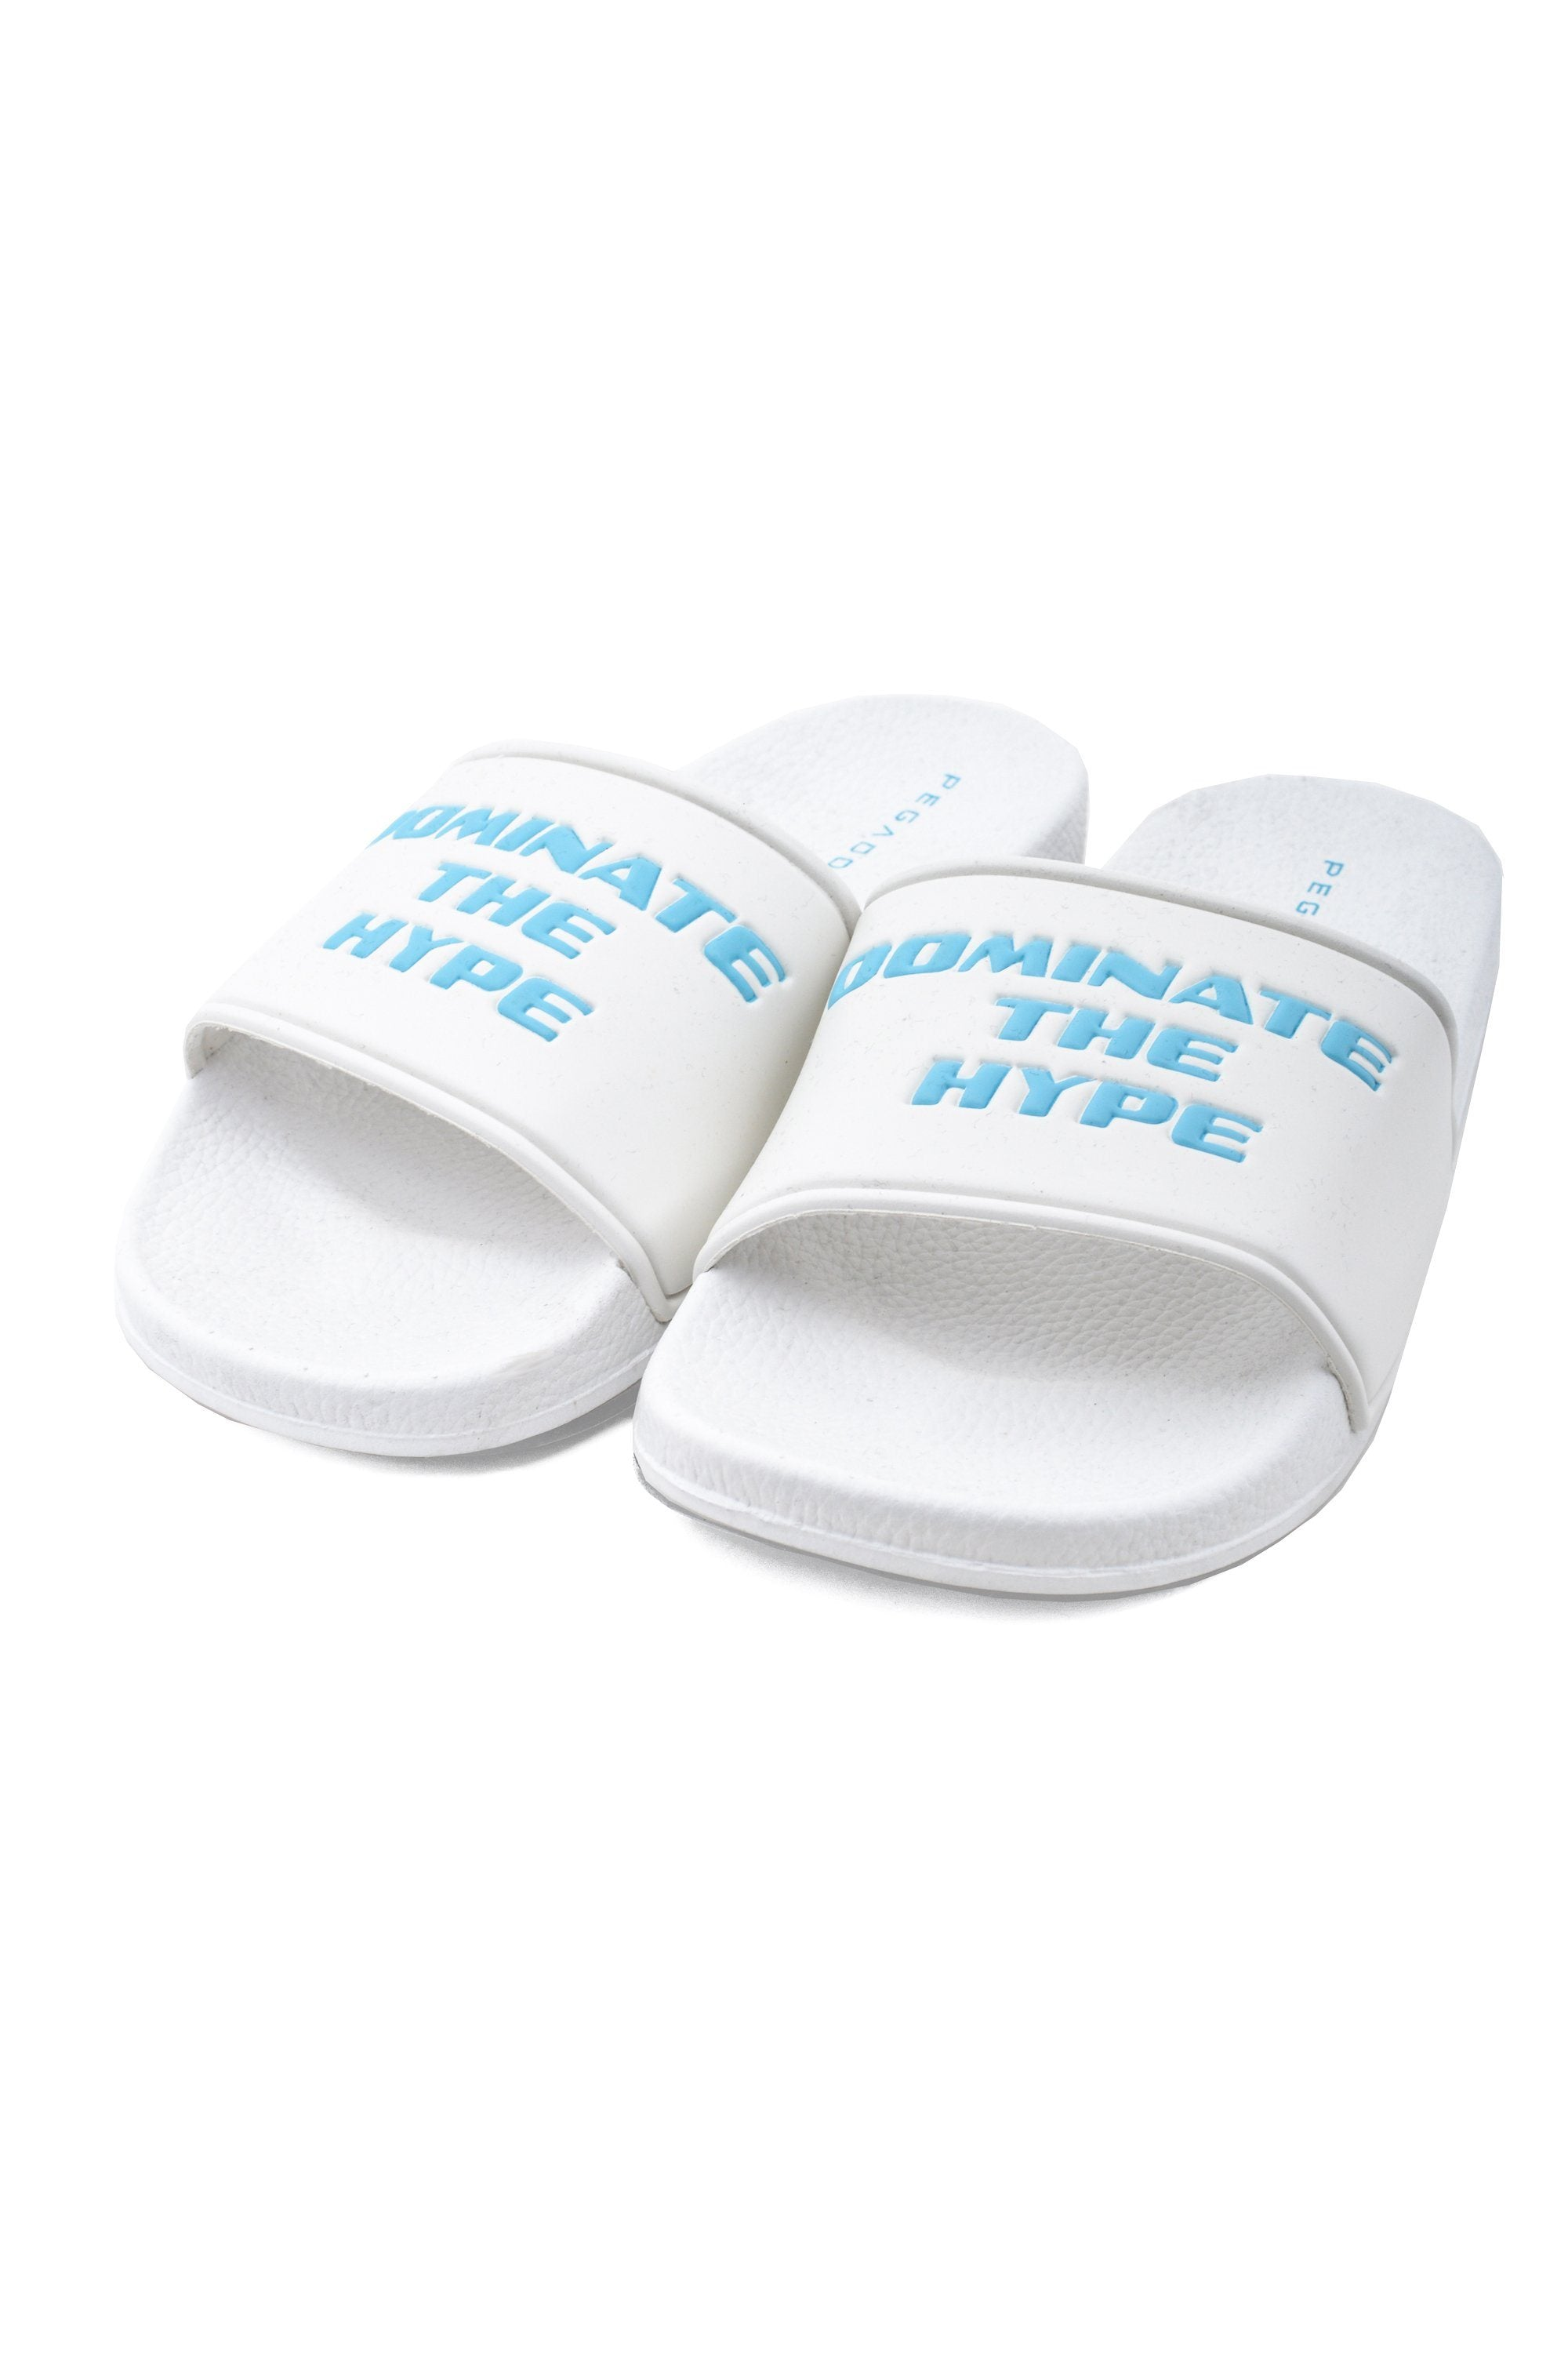 Dominate The Hype Sliders White Shoes PEGADOR